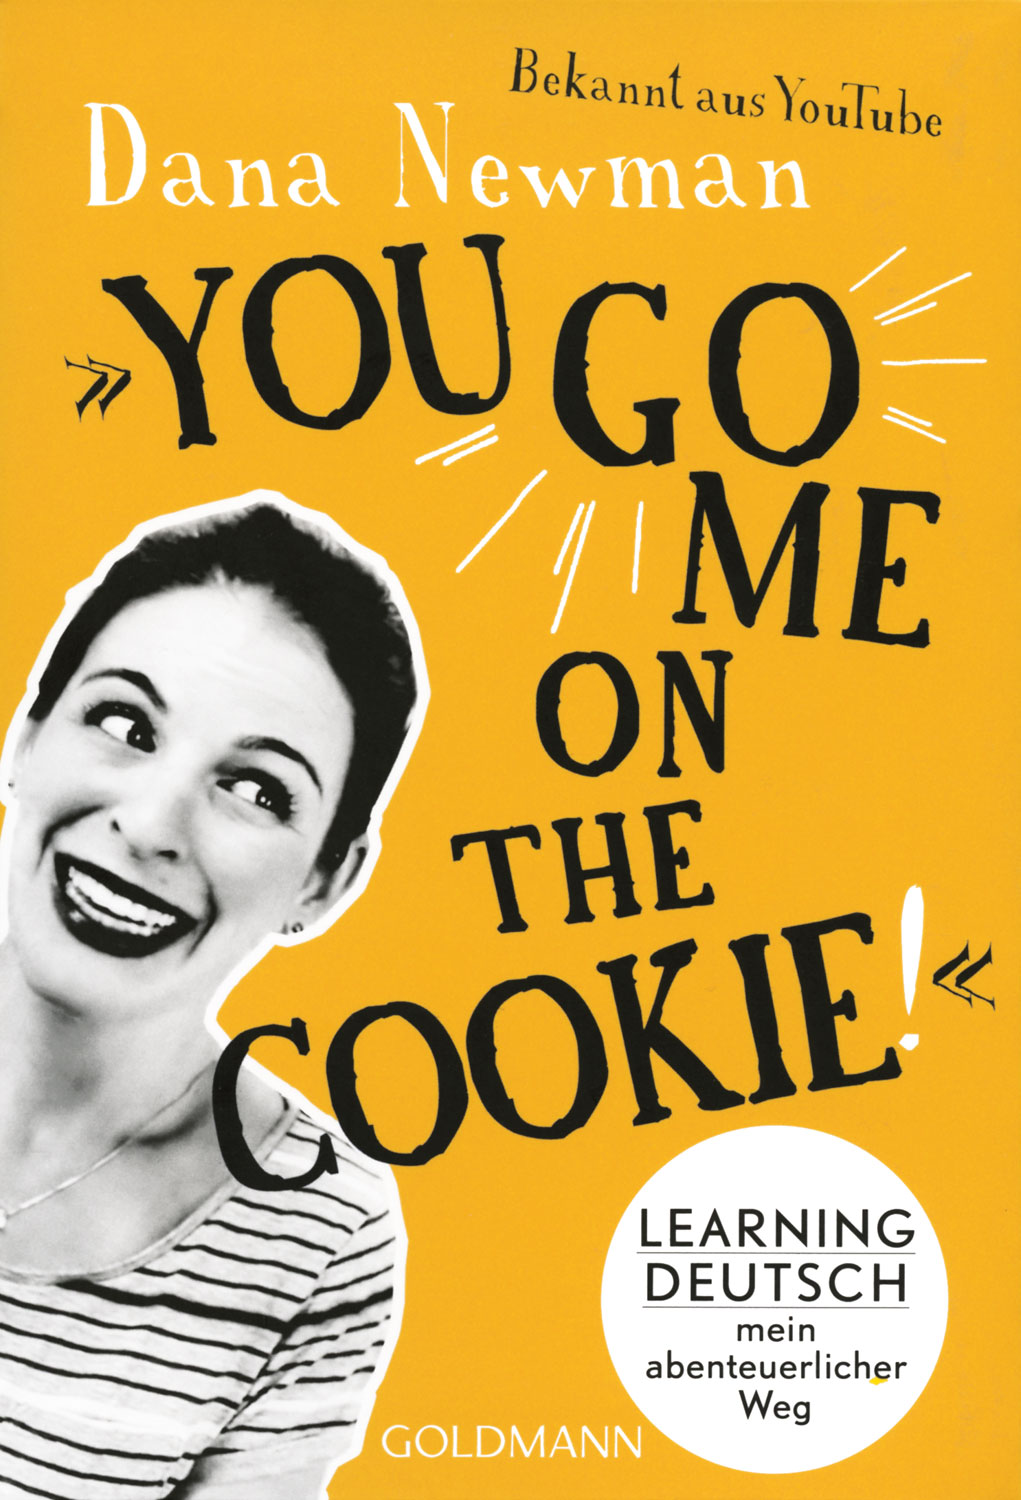 »You go me on the Cookie!«